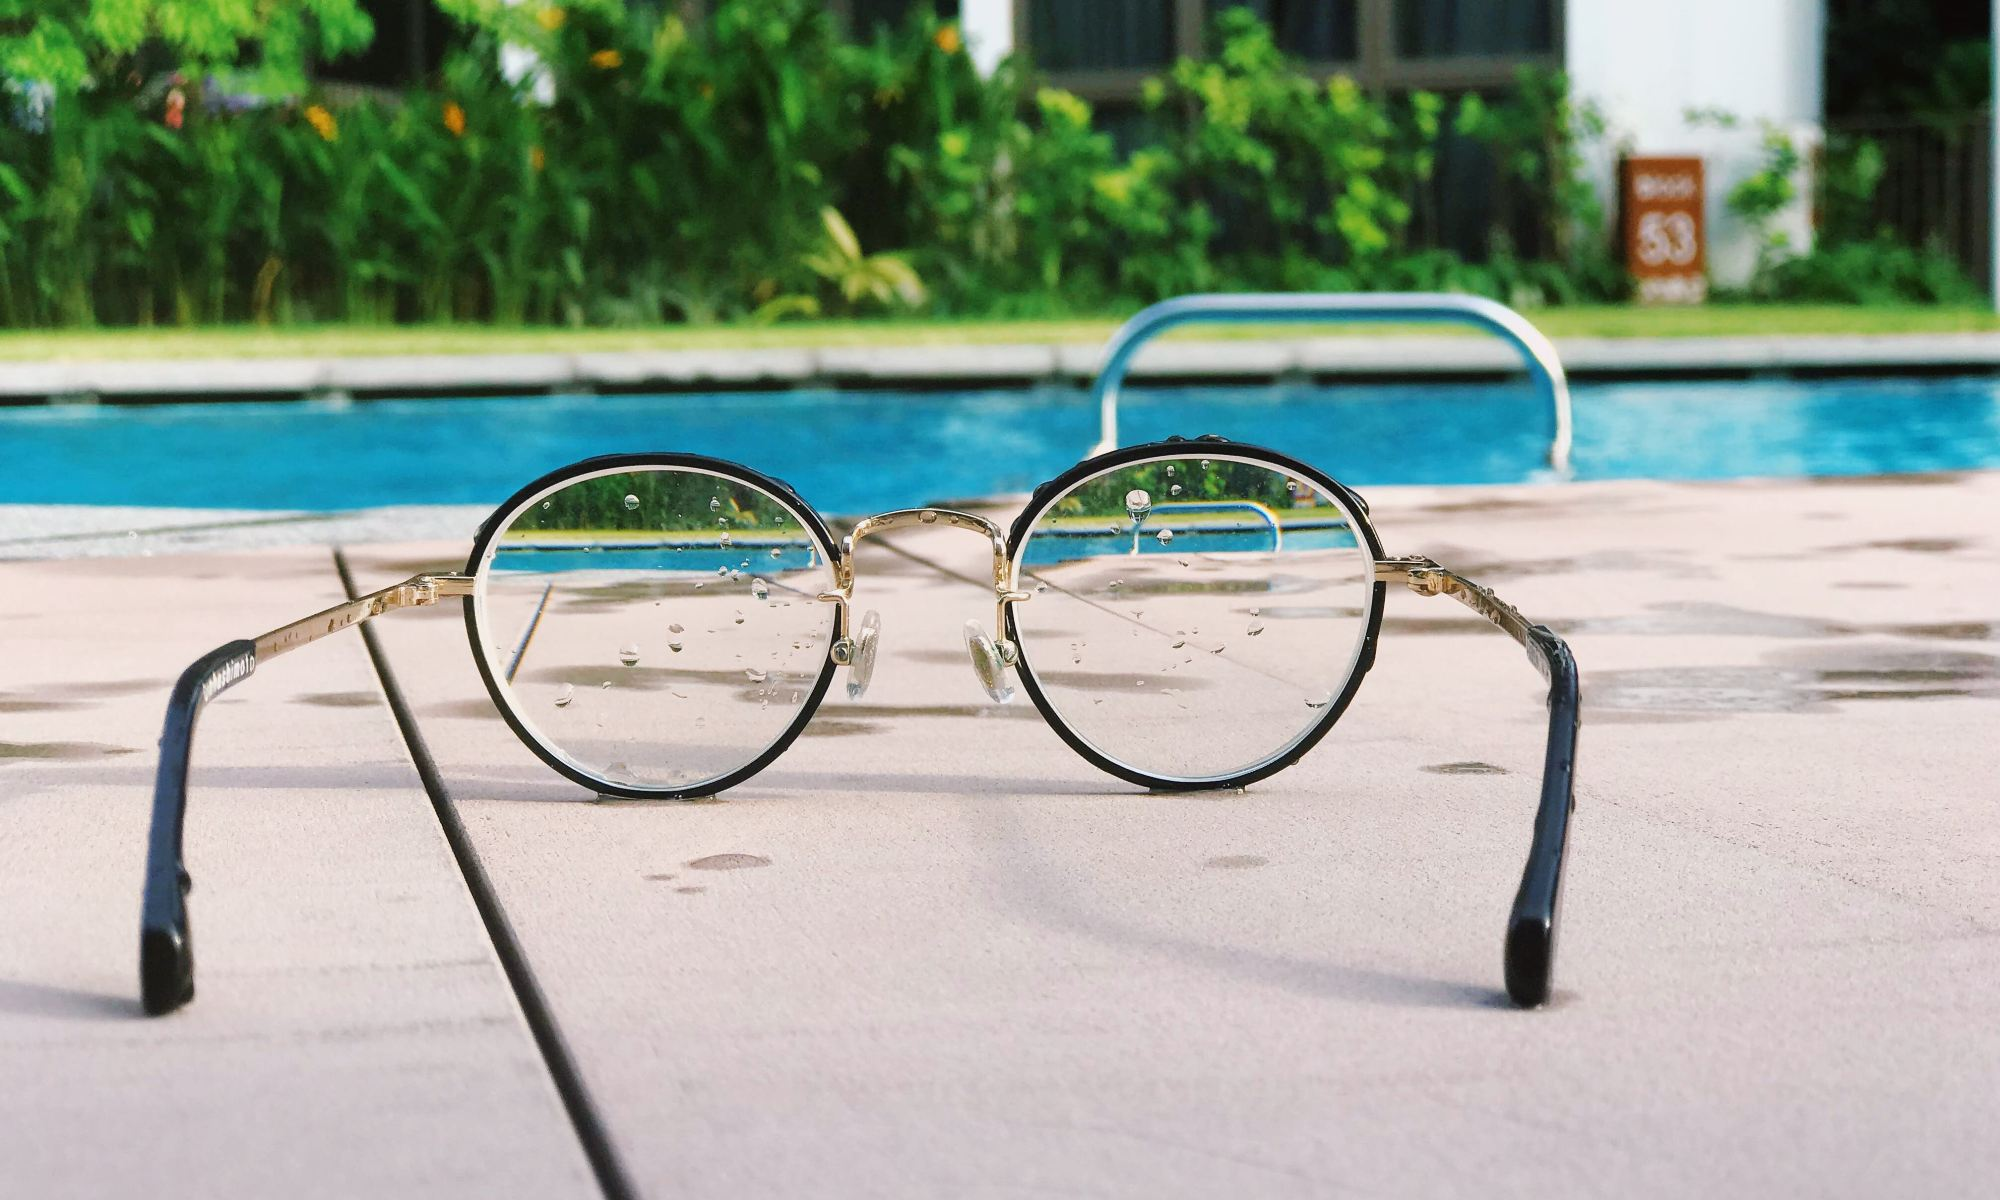 Eyeglasses with black frames on the ground by swimming pool